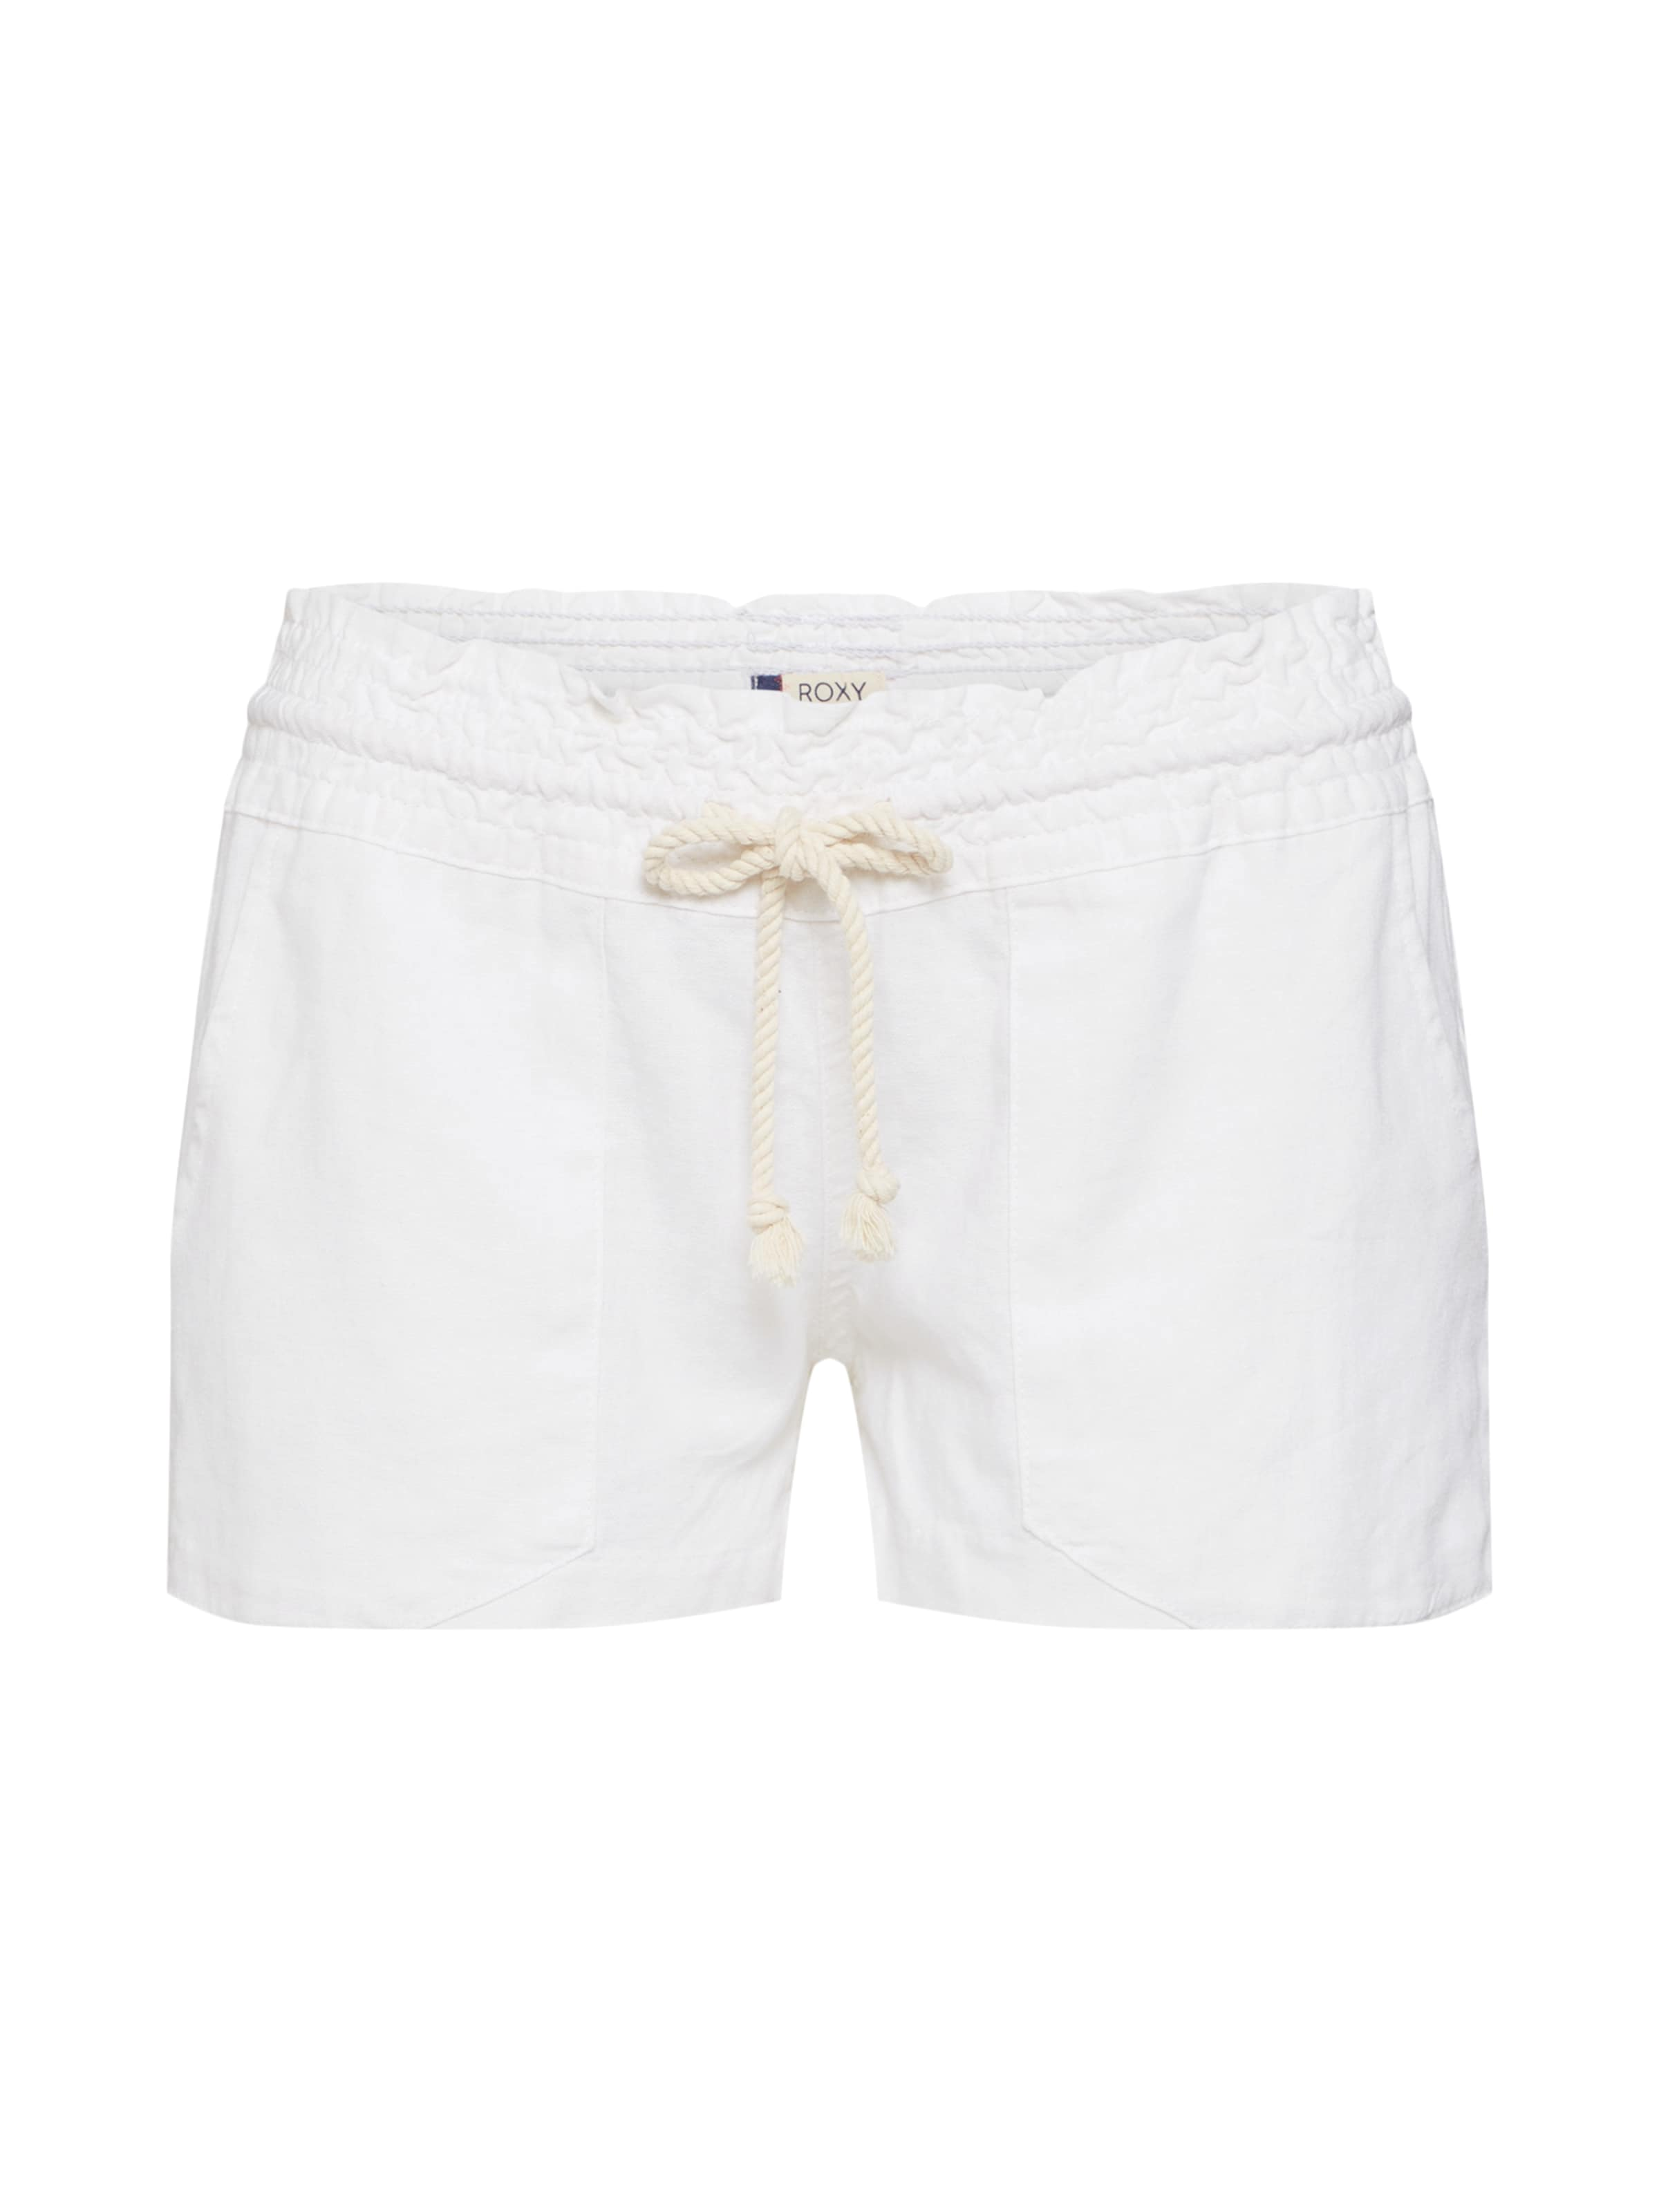 In Shorts Weiß Roxy 'oceanside' Aus Leinen KcF1JTl